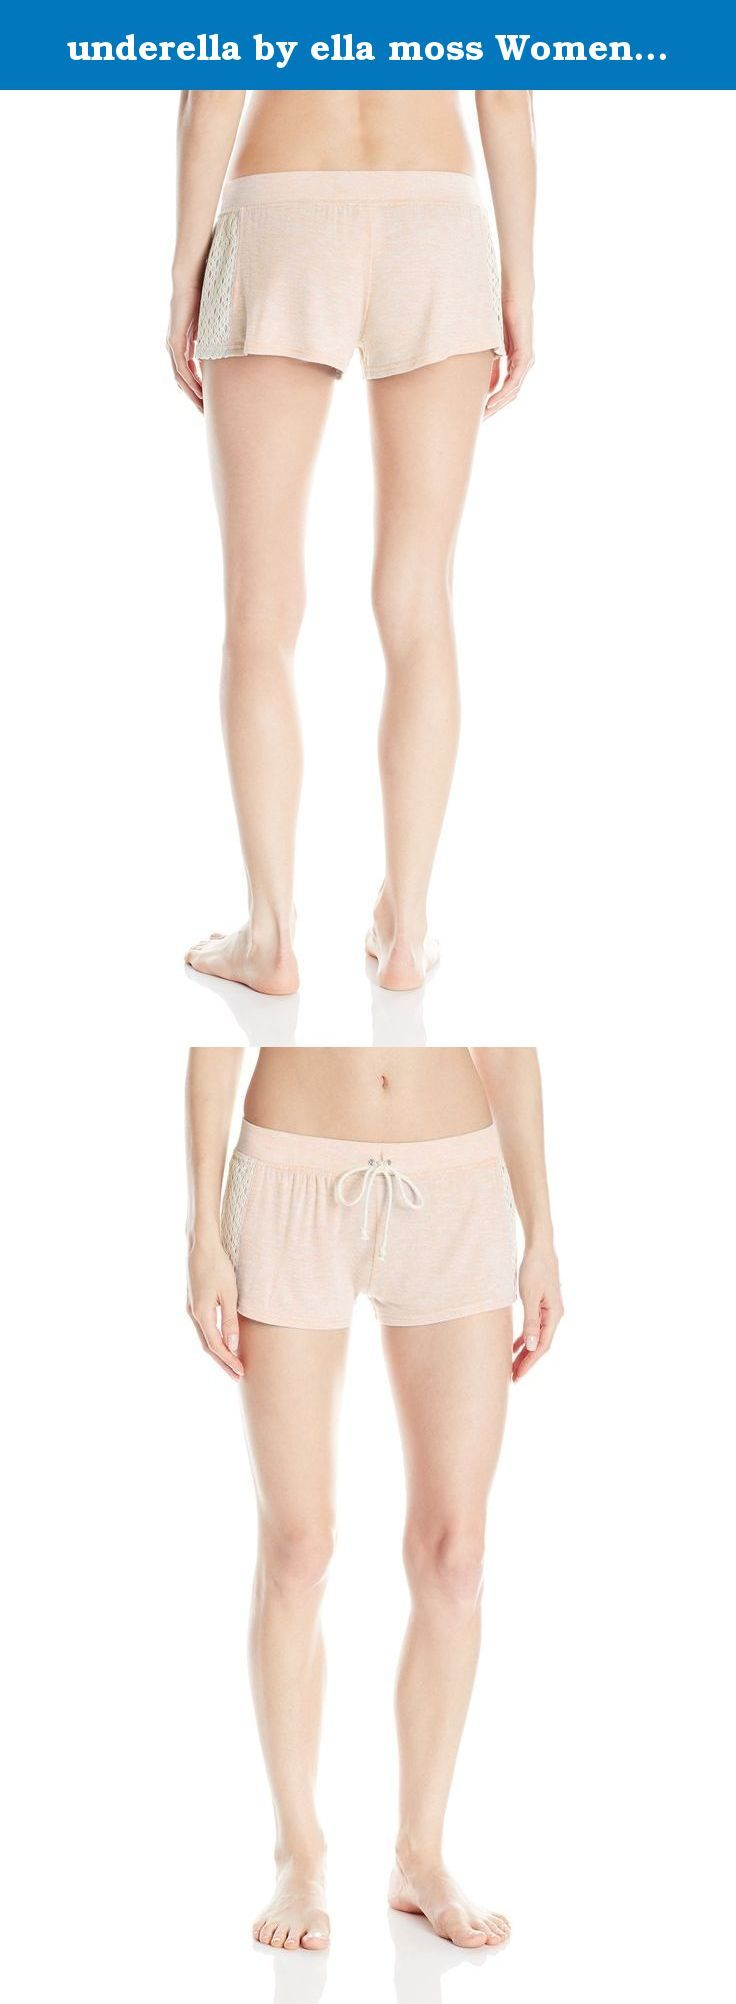 underella by ella moss Women's Harlow Short, Peach Heather, Large. Low rise short with bohemian lace inset at side seams.